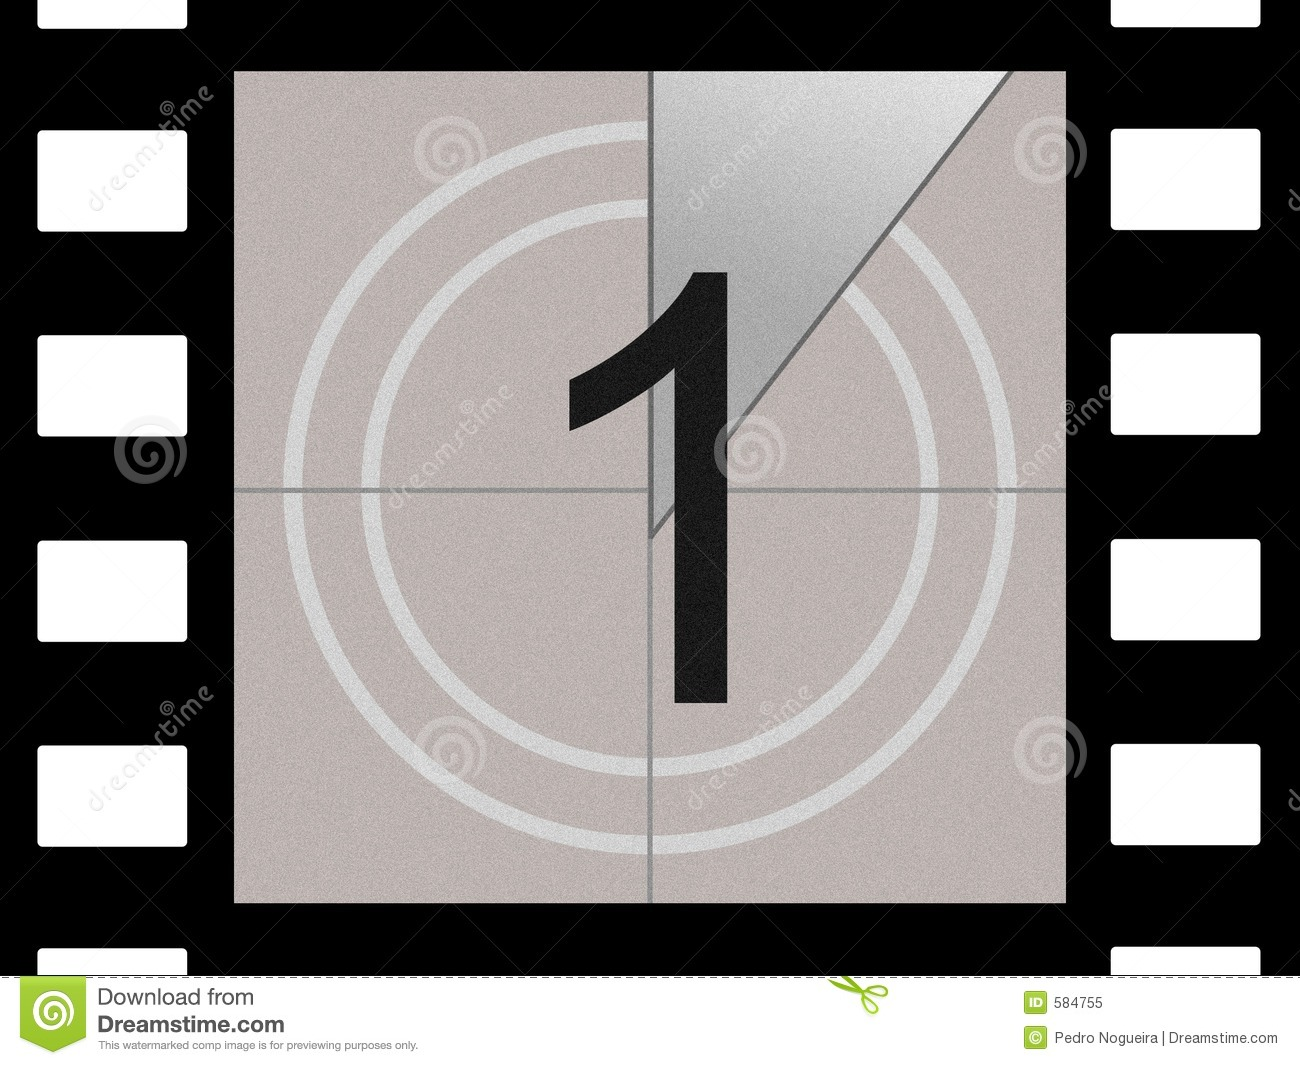 Movie countdown clip art clip art royalty free Movie countdown clip art - ClipartFest clip art royalty free